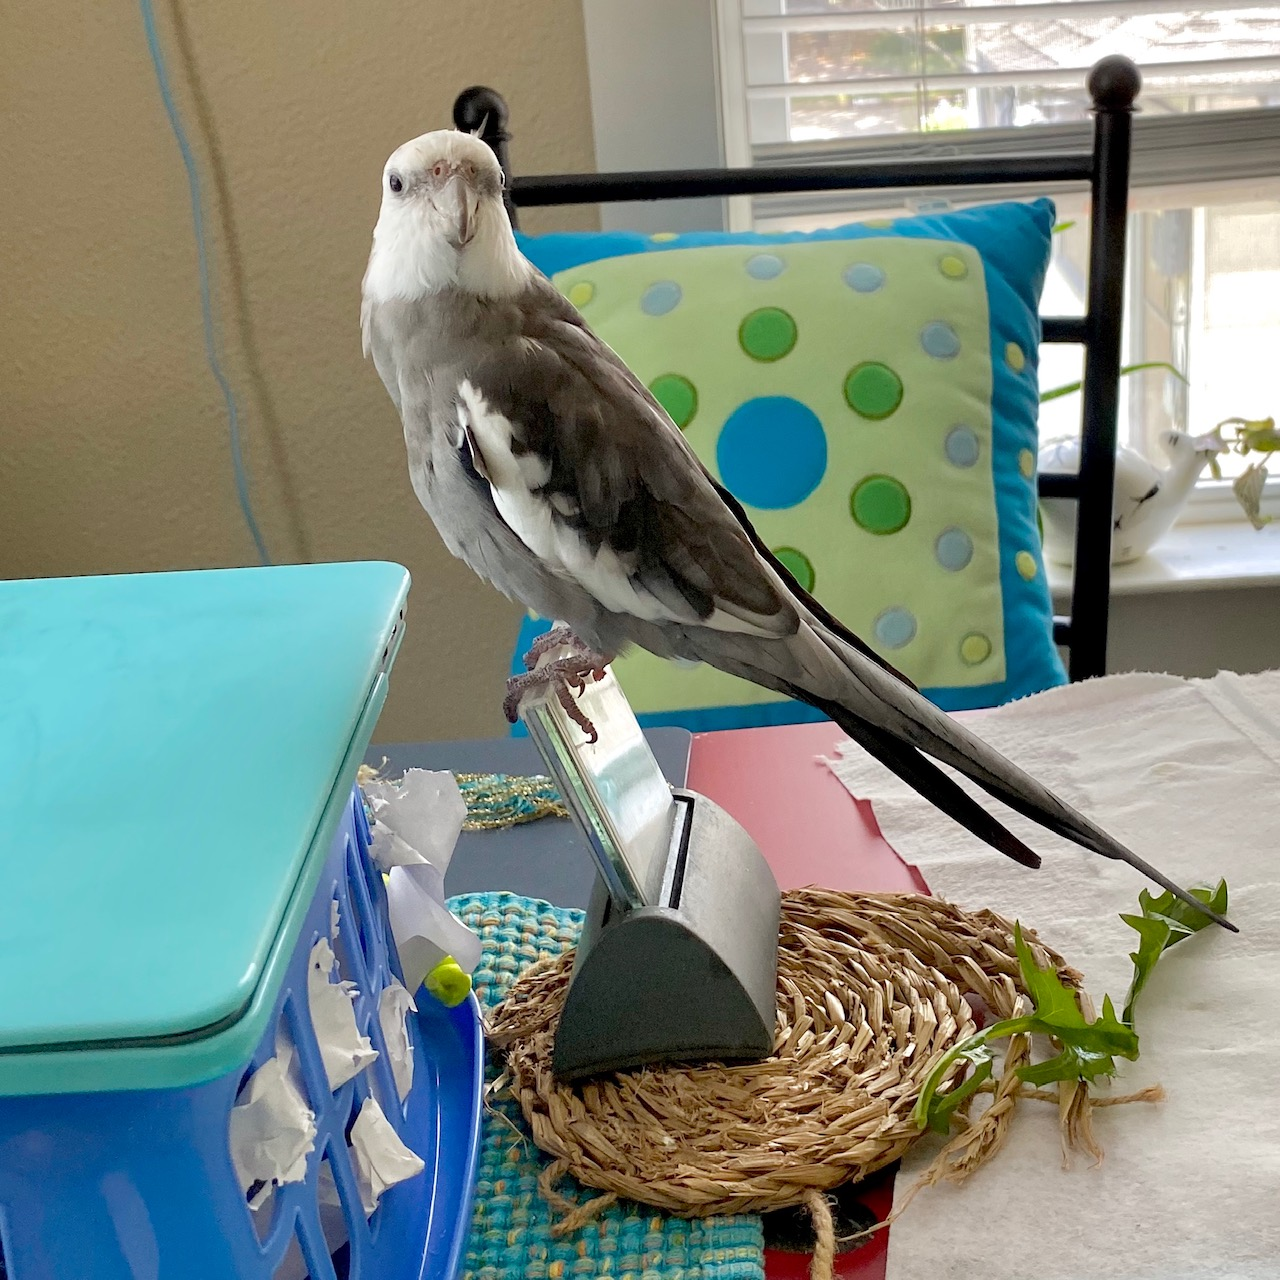 cockatiel stands on clock